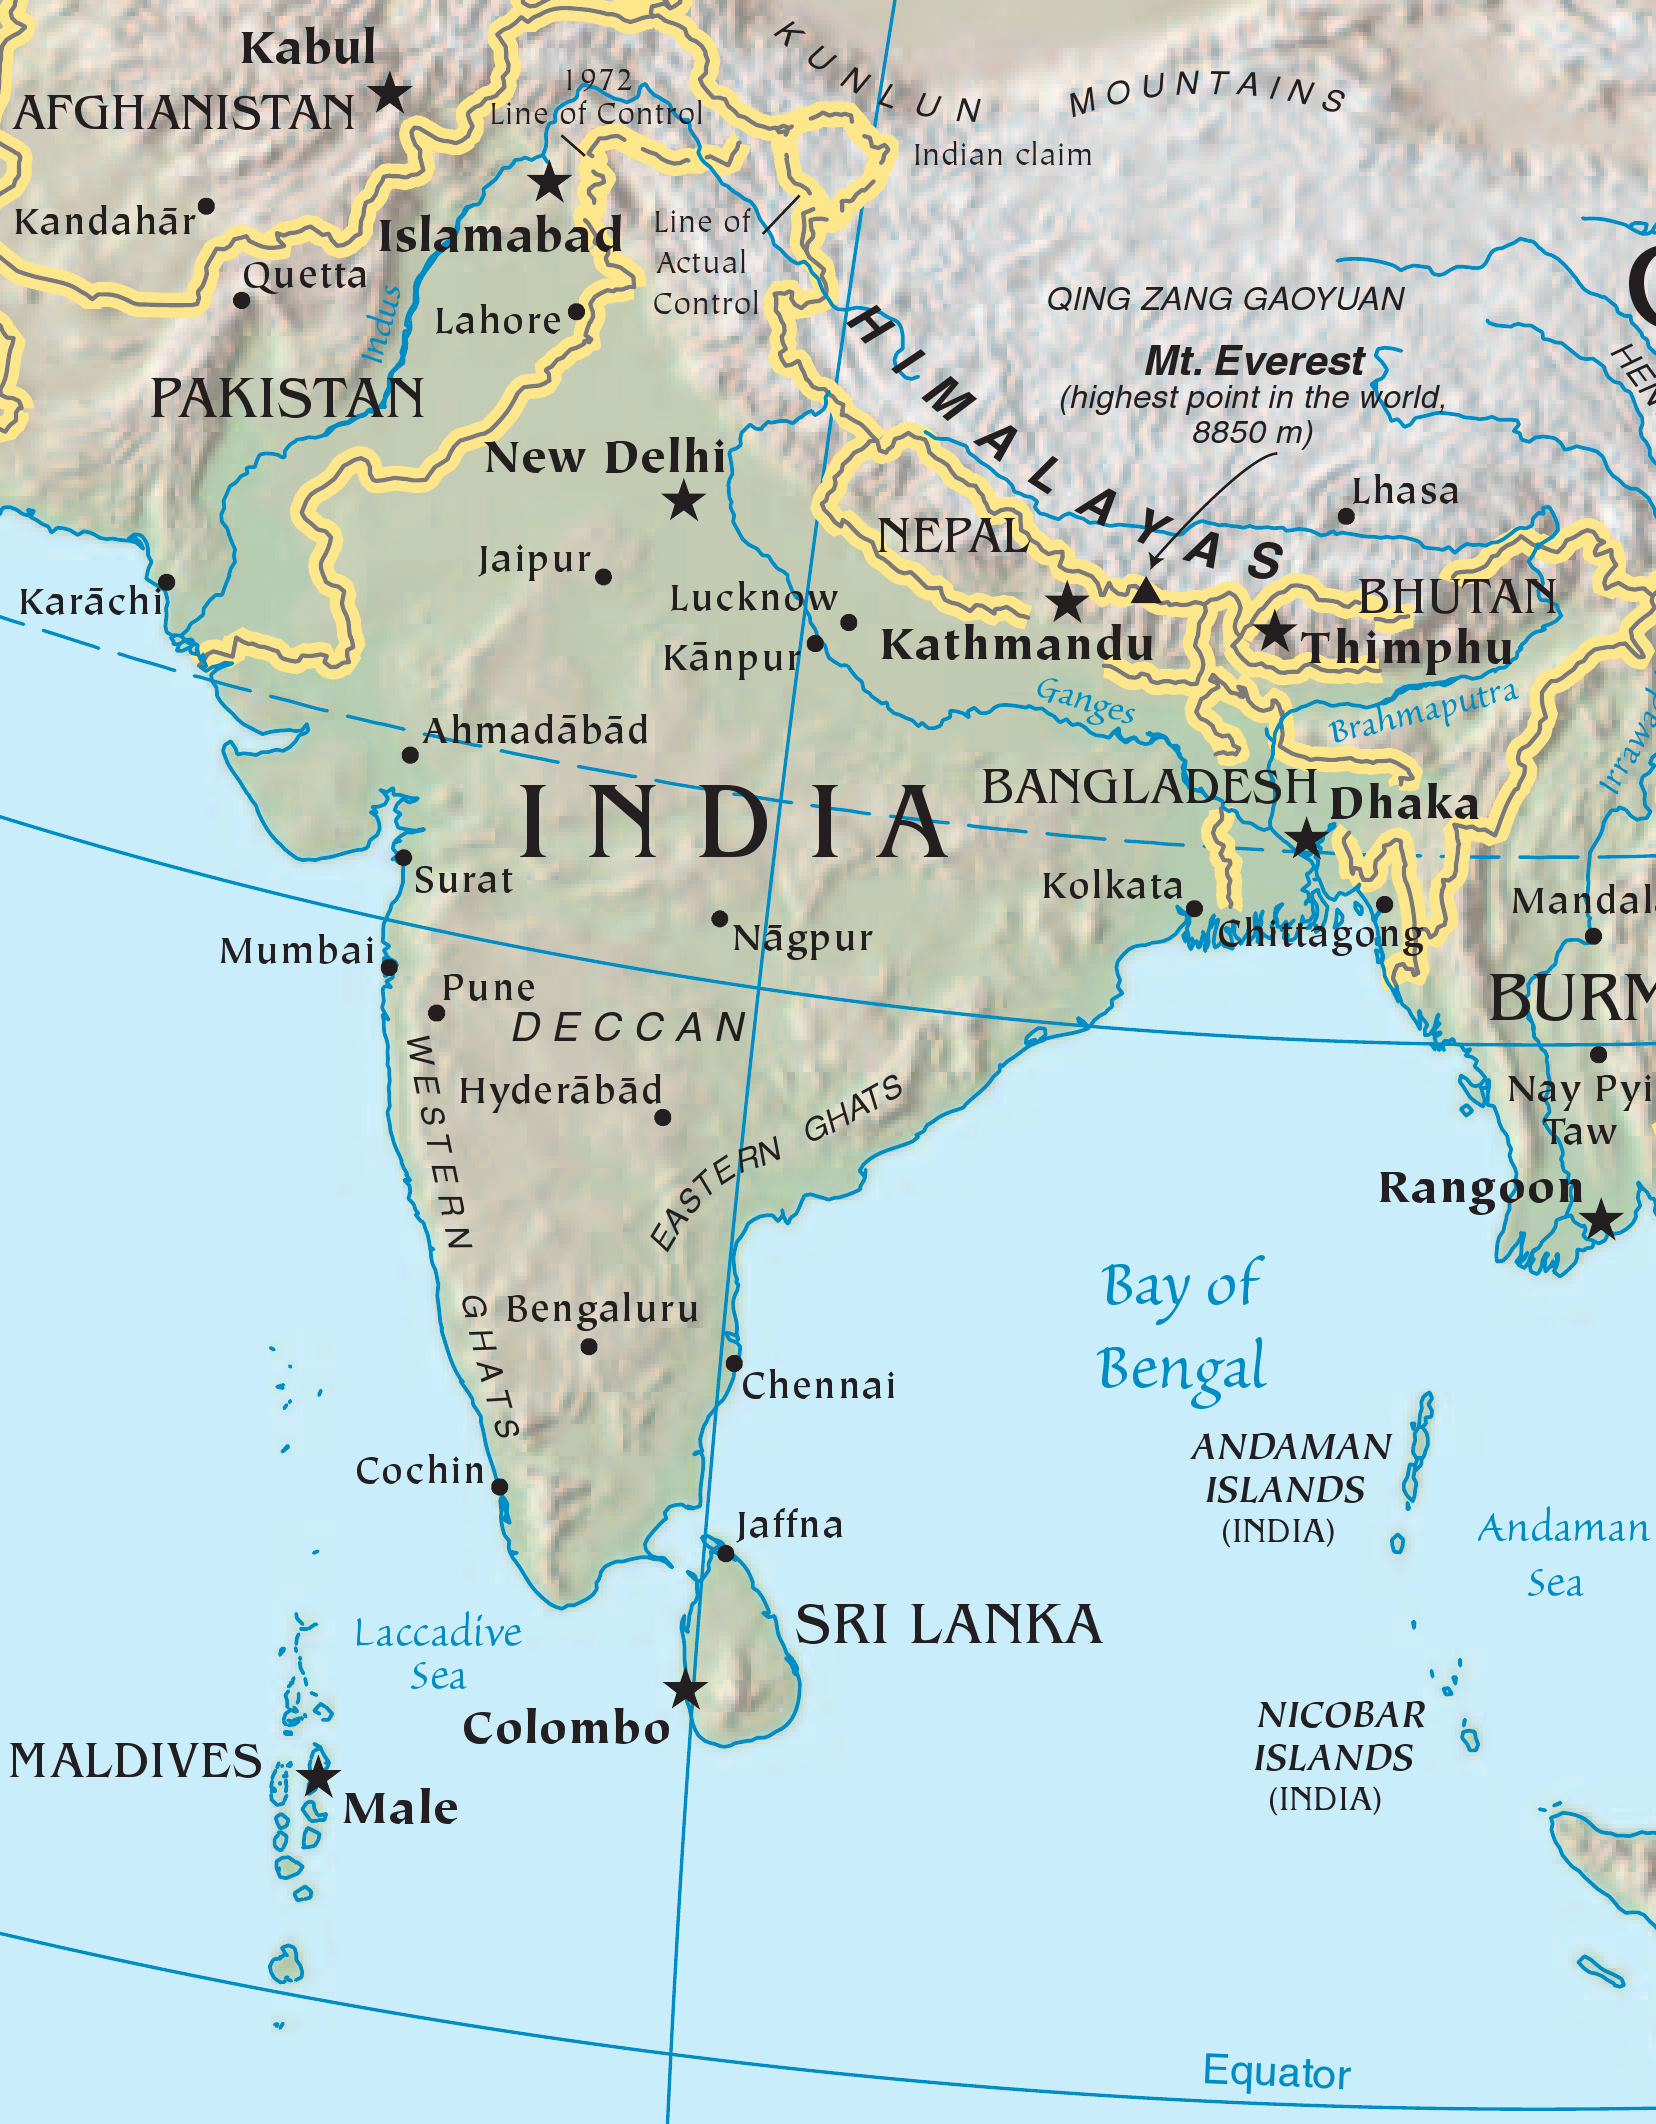 FileIndian Subcontinent CIApng Wikimedia Commons - Maldives map india